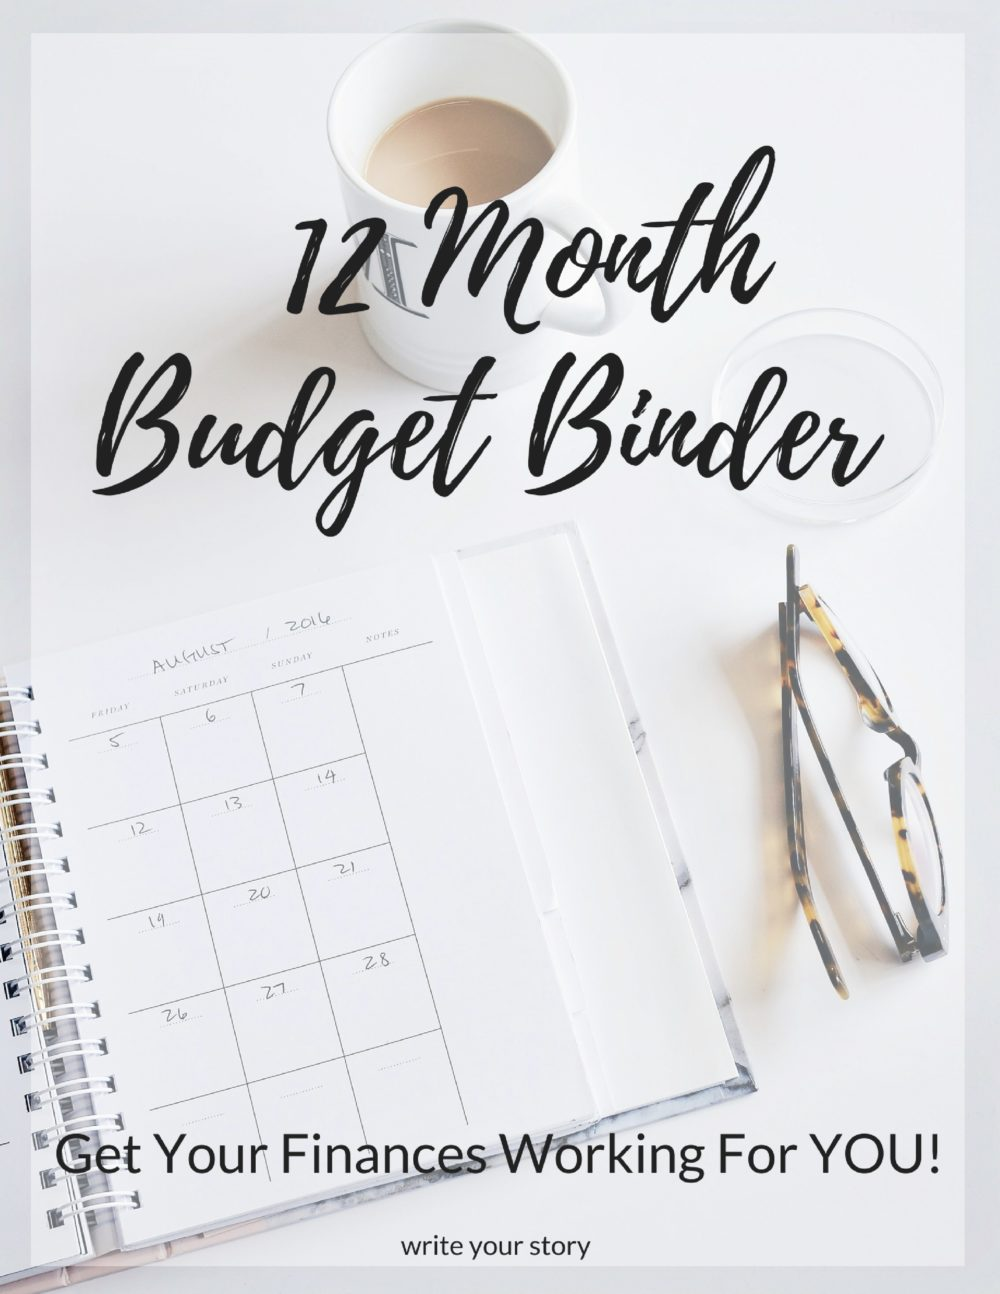 12 month budget binder write your story